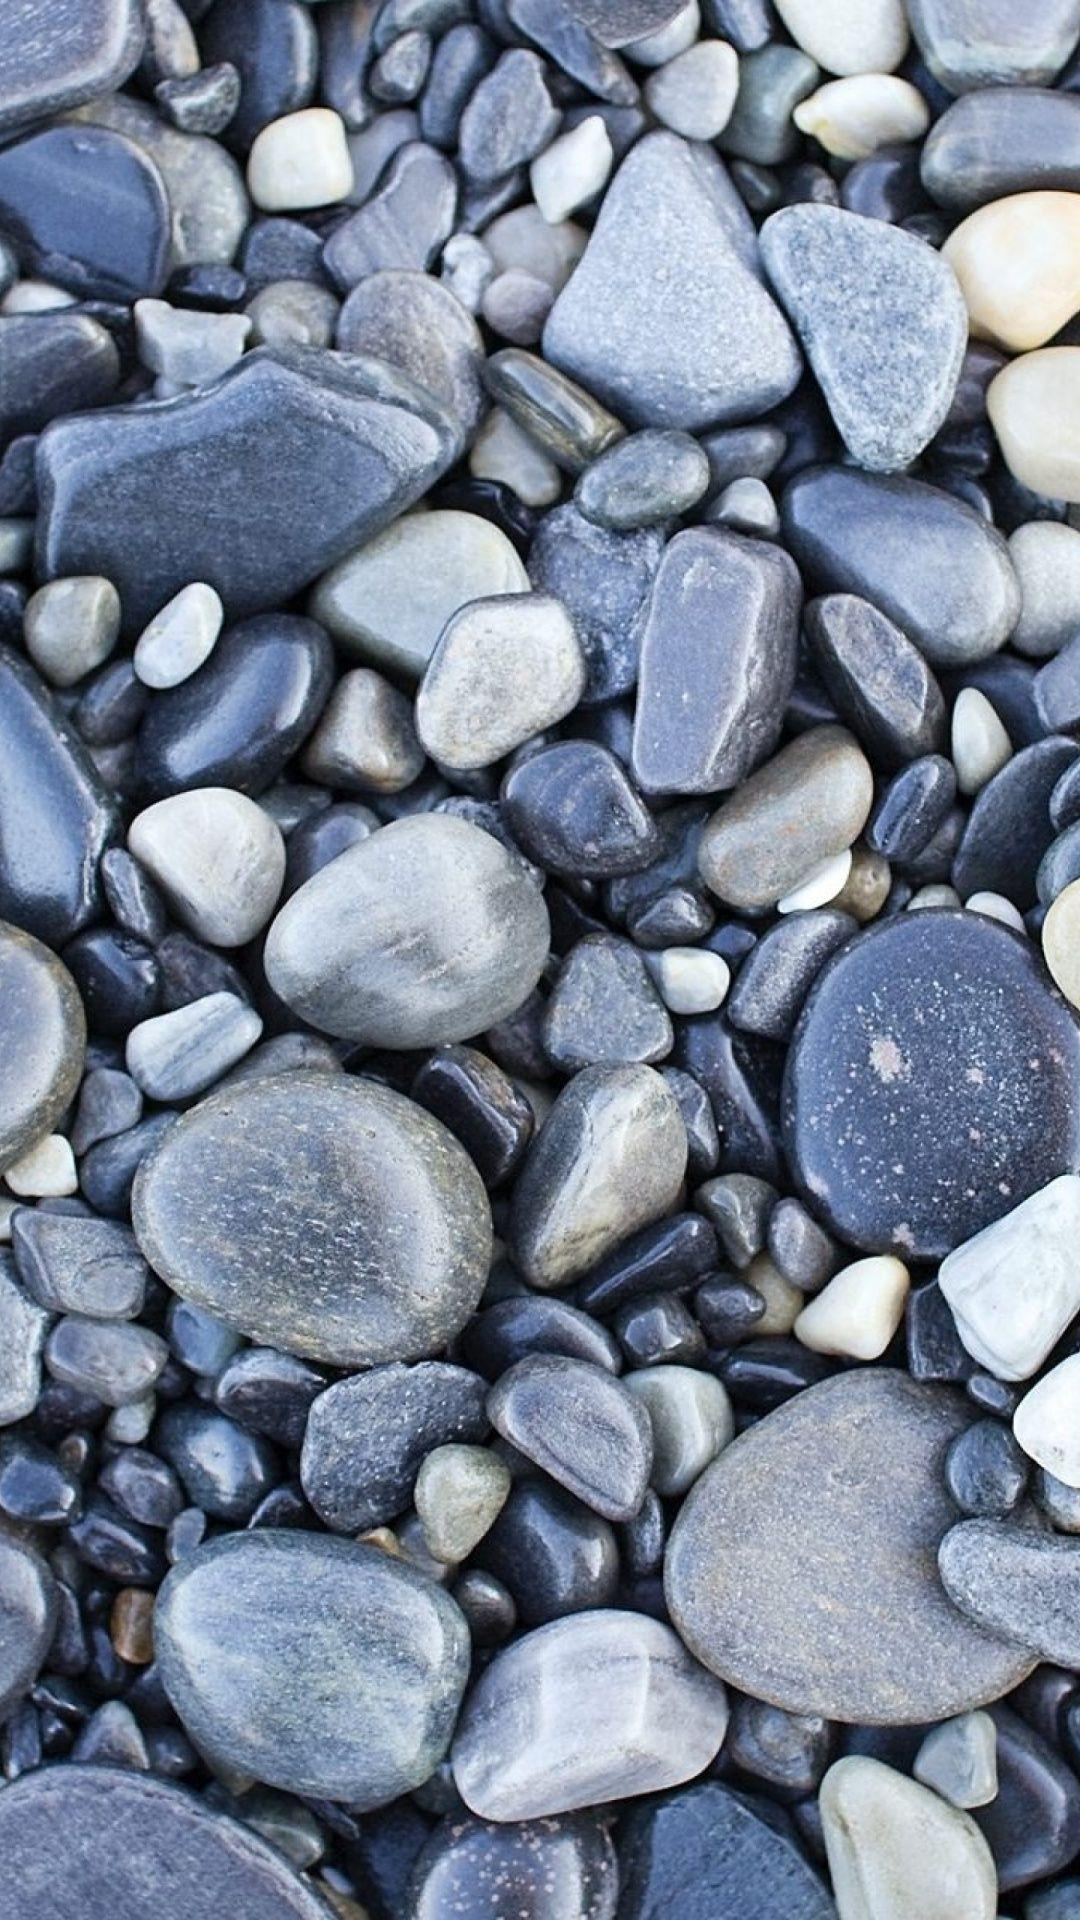 Colorful Pebbles Wallpaper For iPhone - iPhone Wallpaper